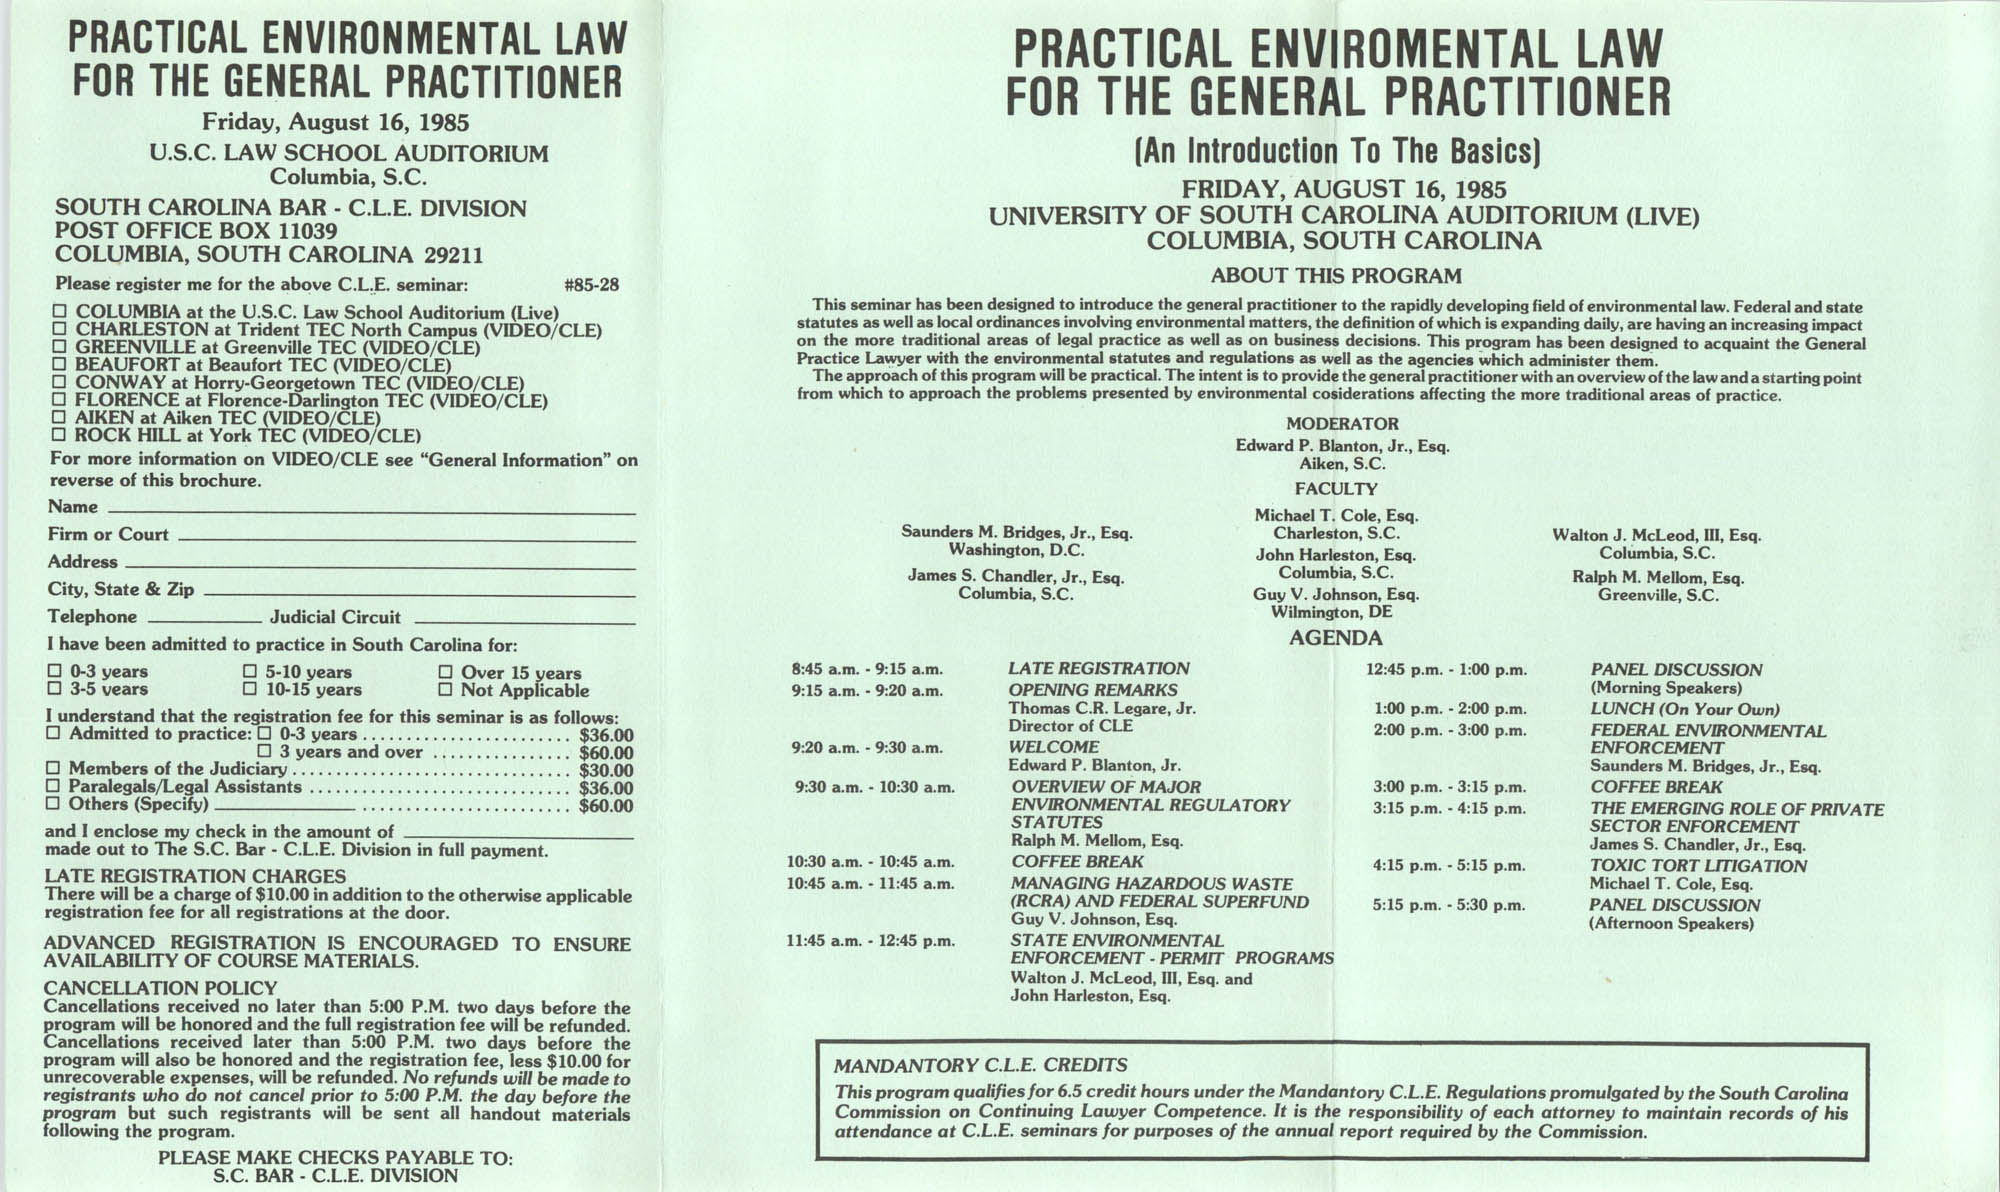 Practical Environmental Law for the General Practitioner, Video/CLE Seminar Pamphlet, August 16, 1985